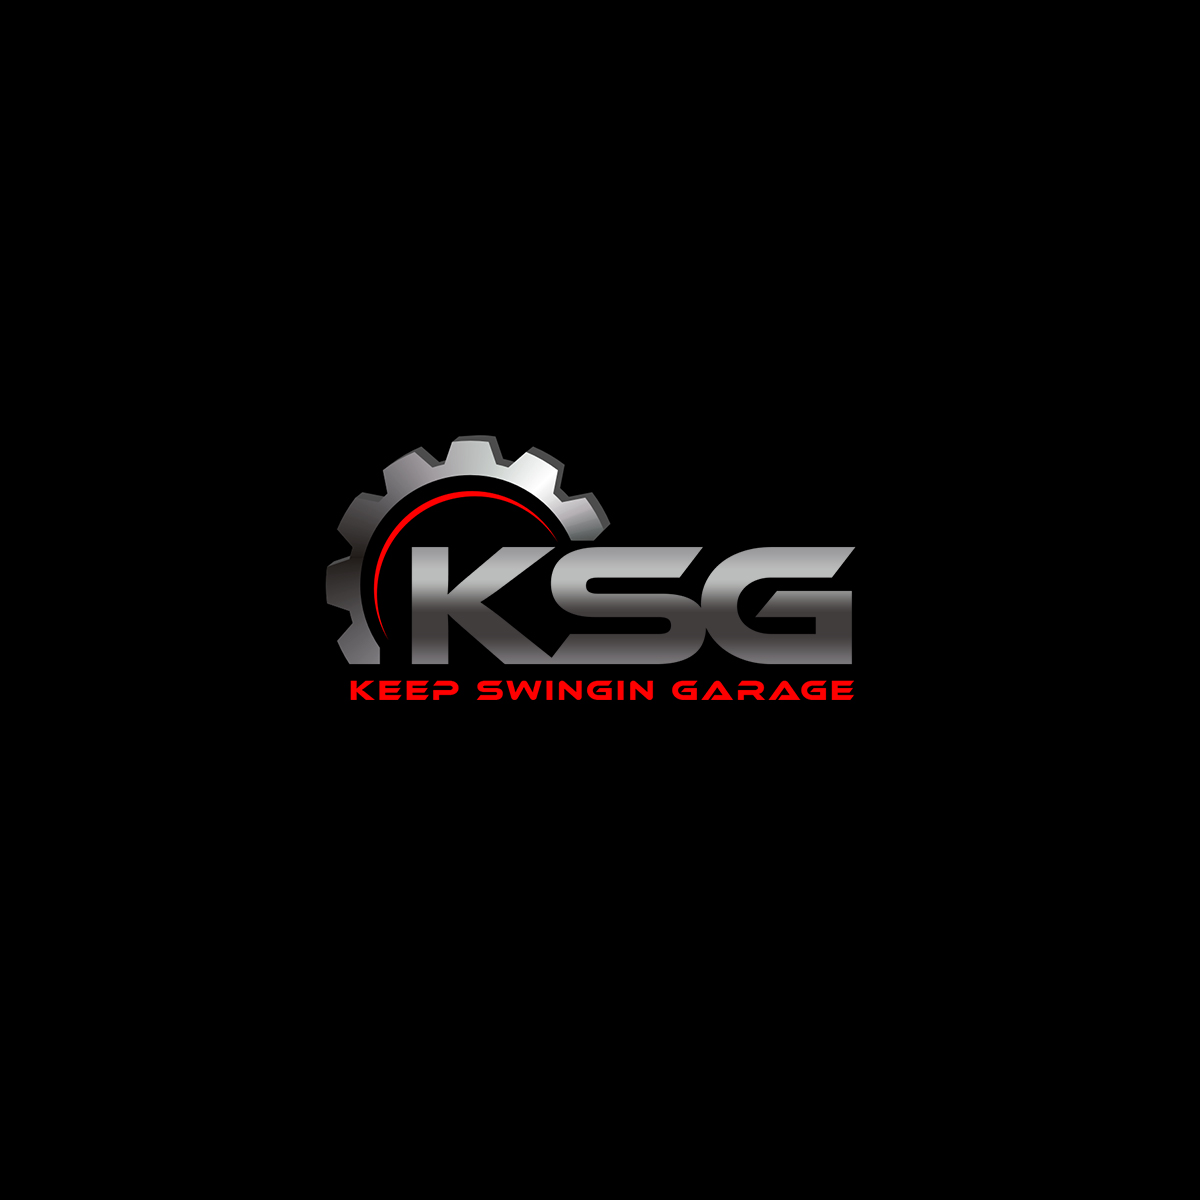 Modern Masculine Auto Repair Logo Design For Ksg By Sooniaa Design 21592894